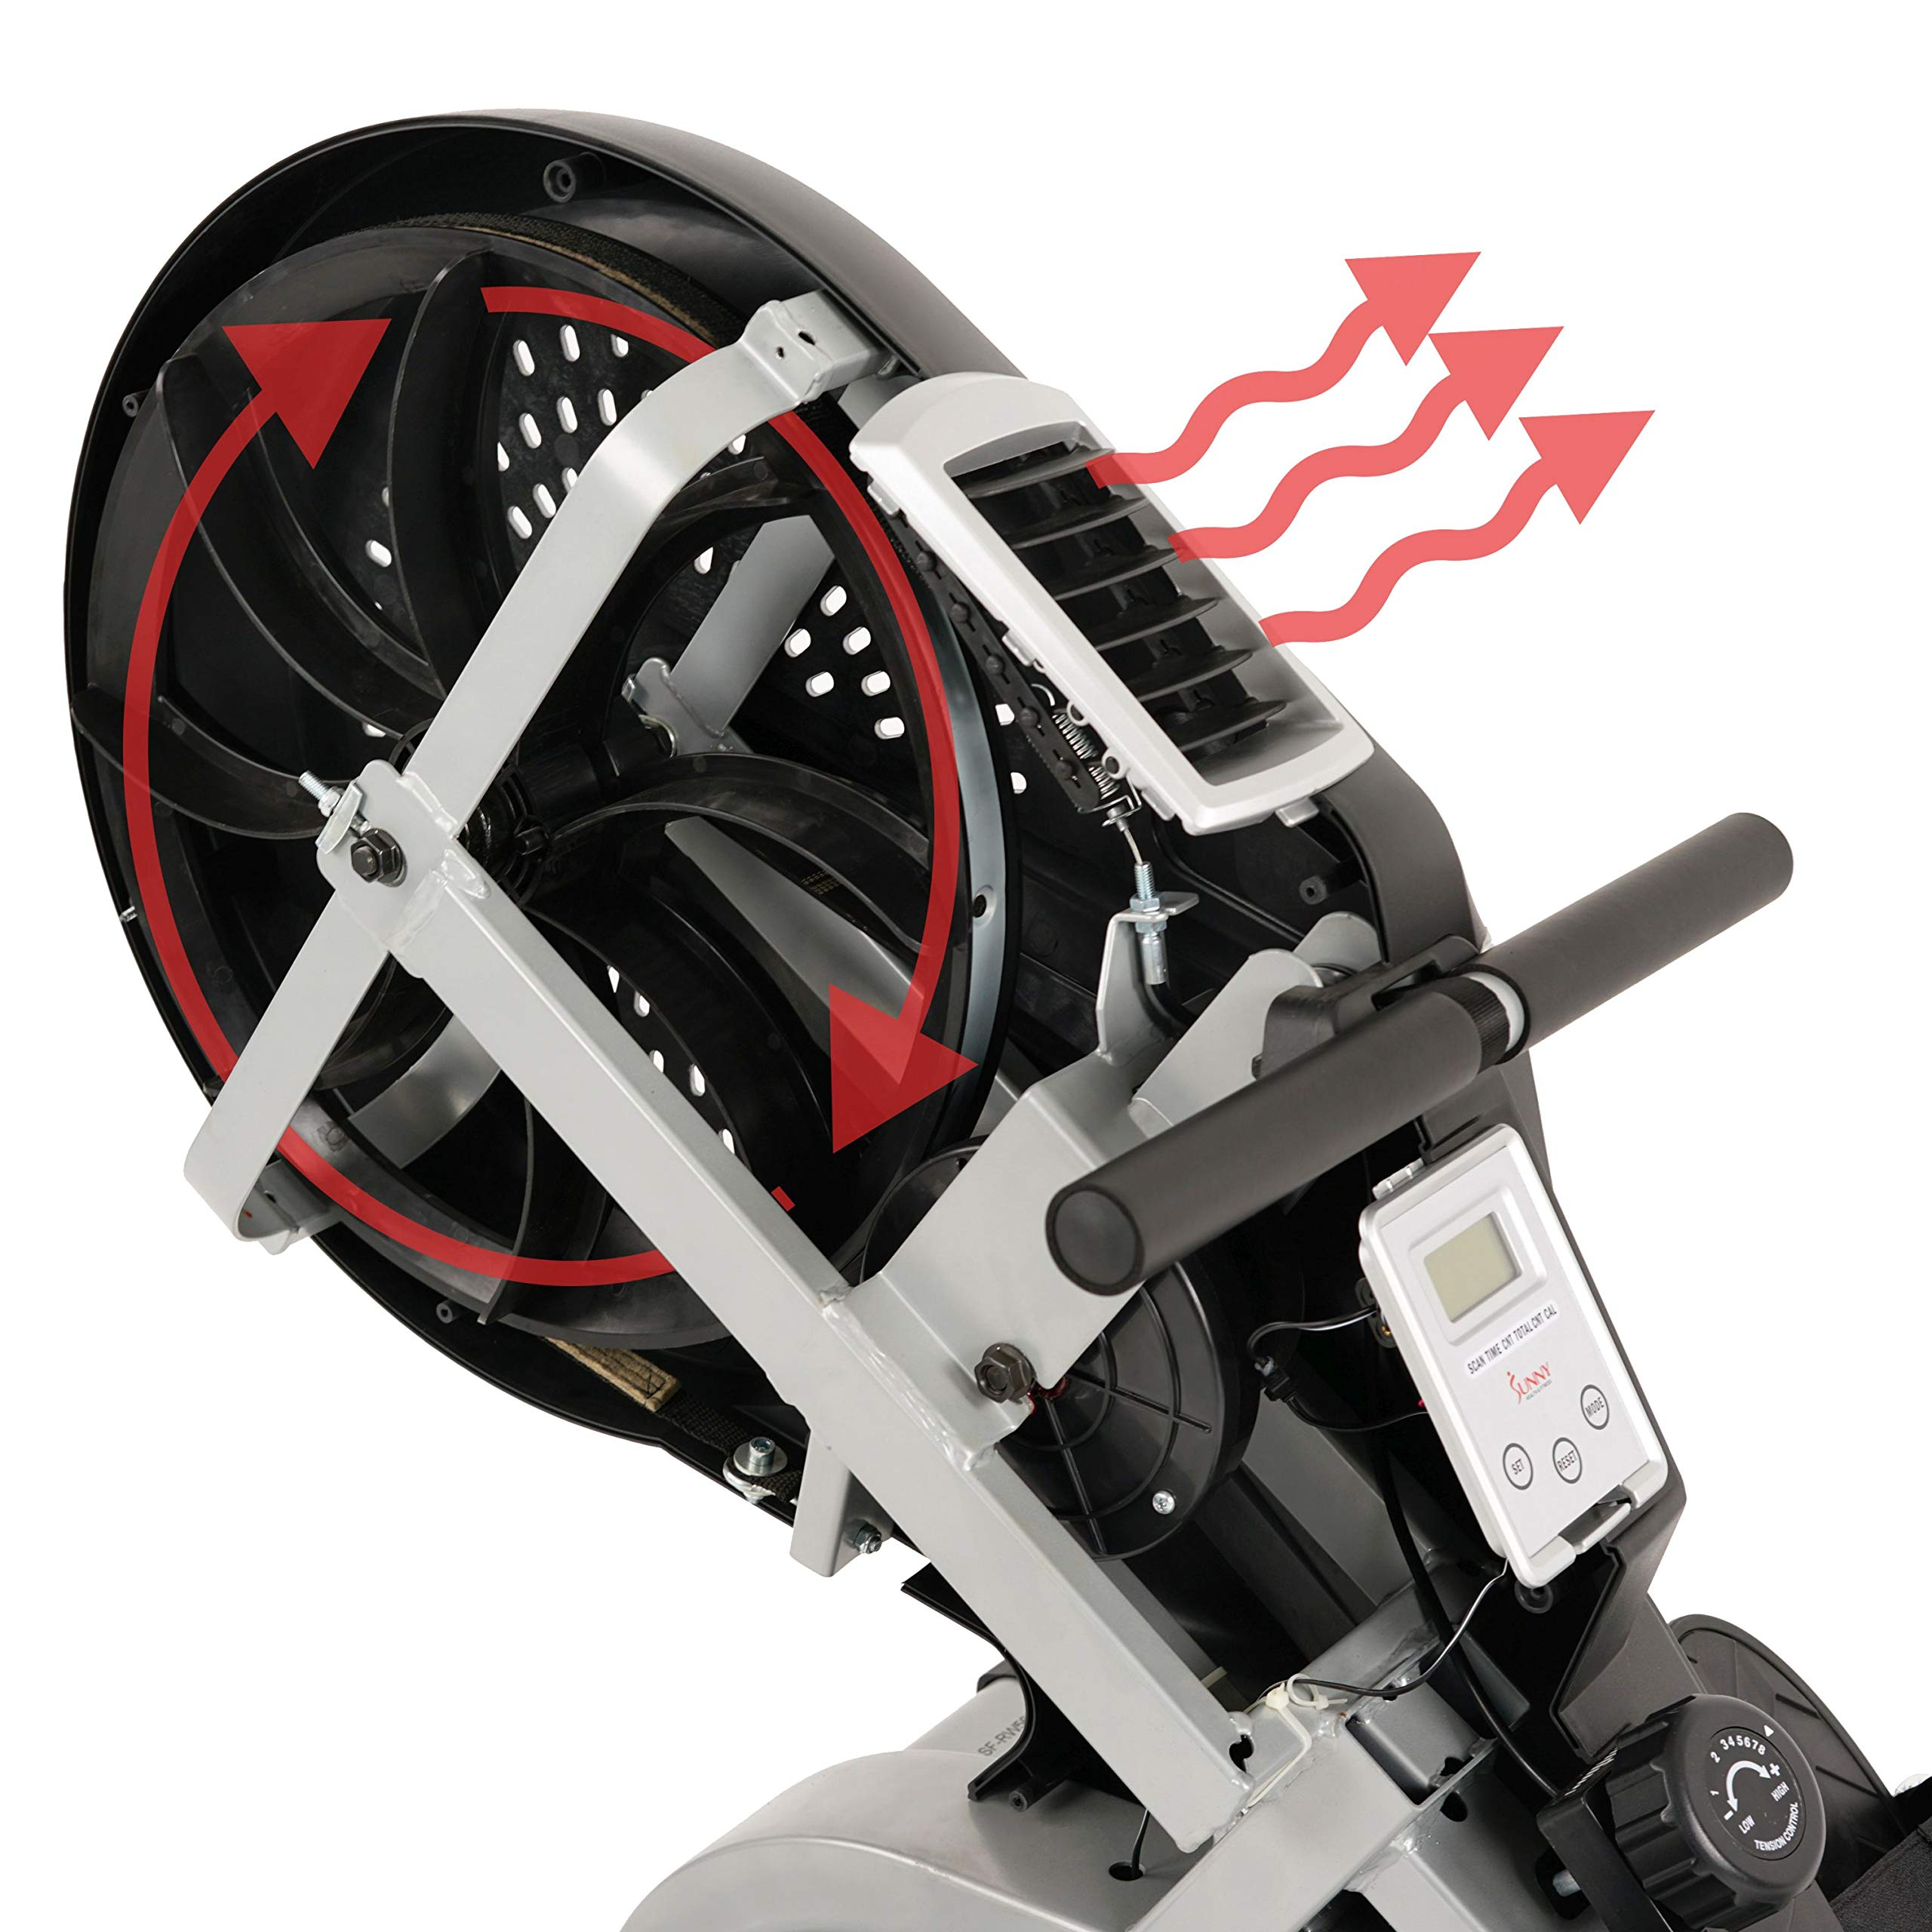 Sunny Health & Fitness Air Rower Rowing Machine w/ LCD Monitor, Dual Belt and Air Resistance SF-RW5623 by Sunny Health & Fitness (Image #19)